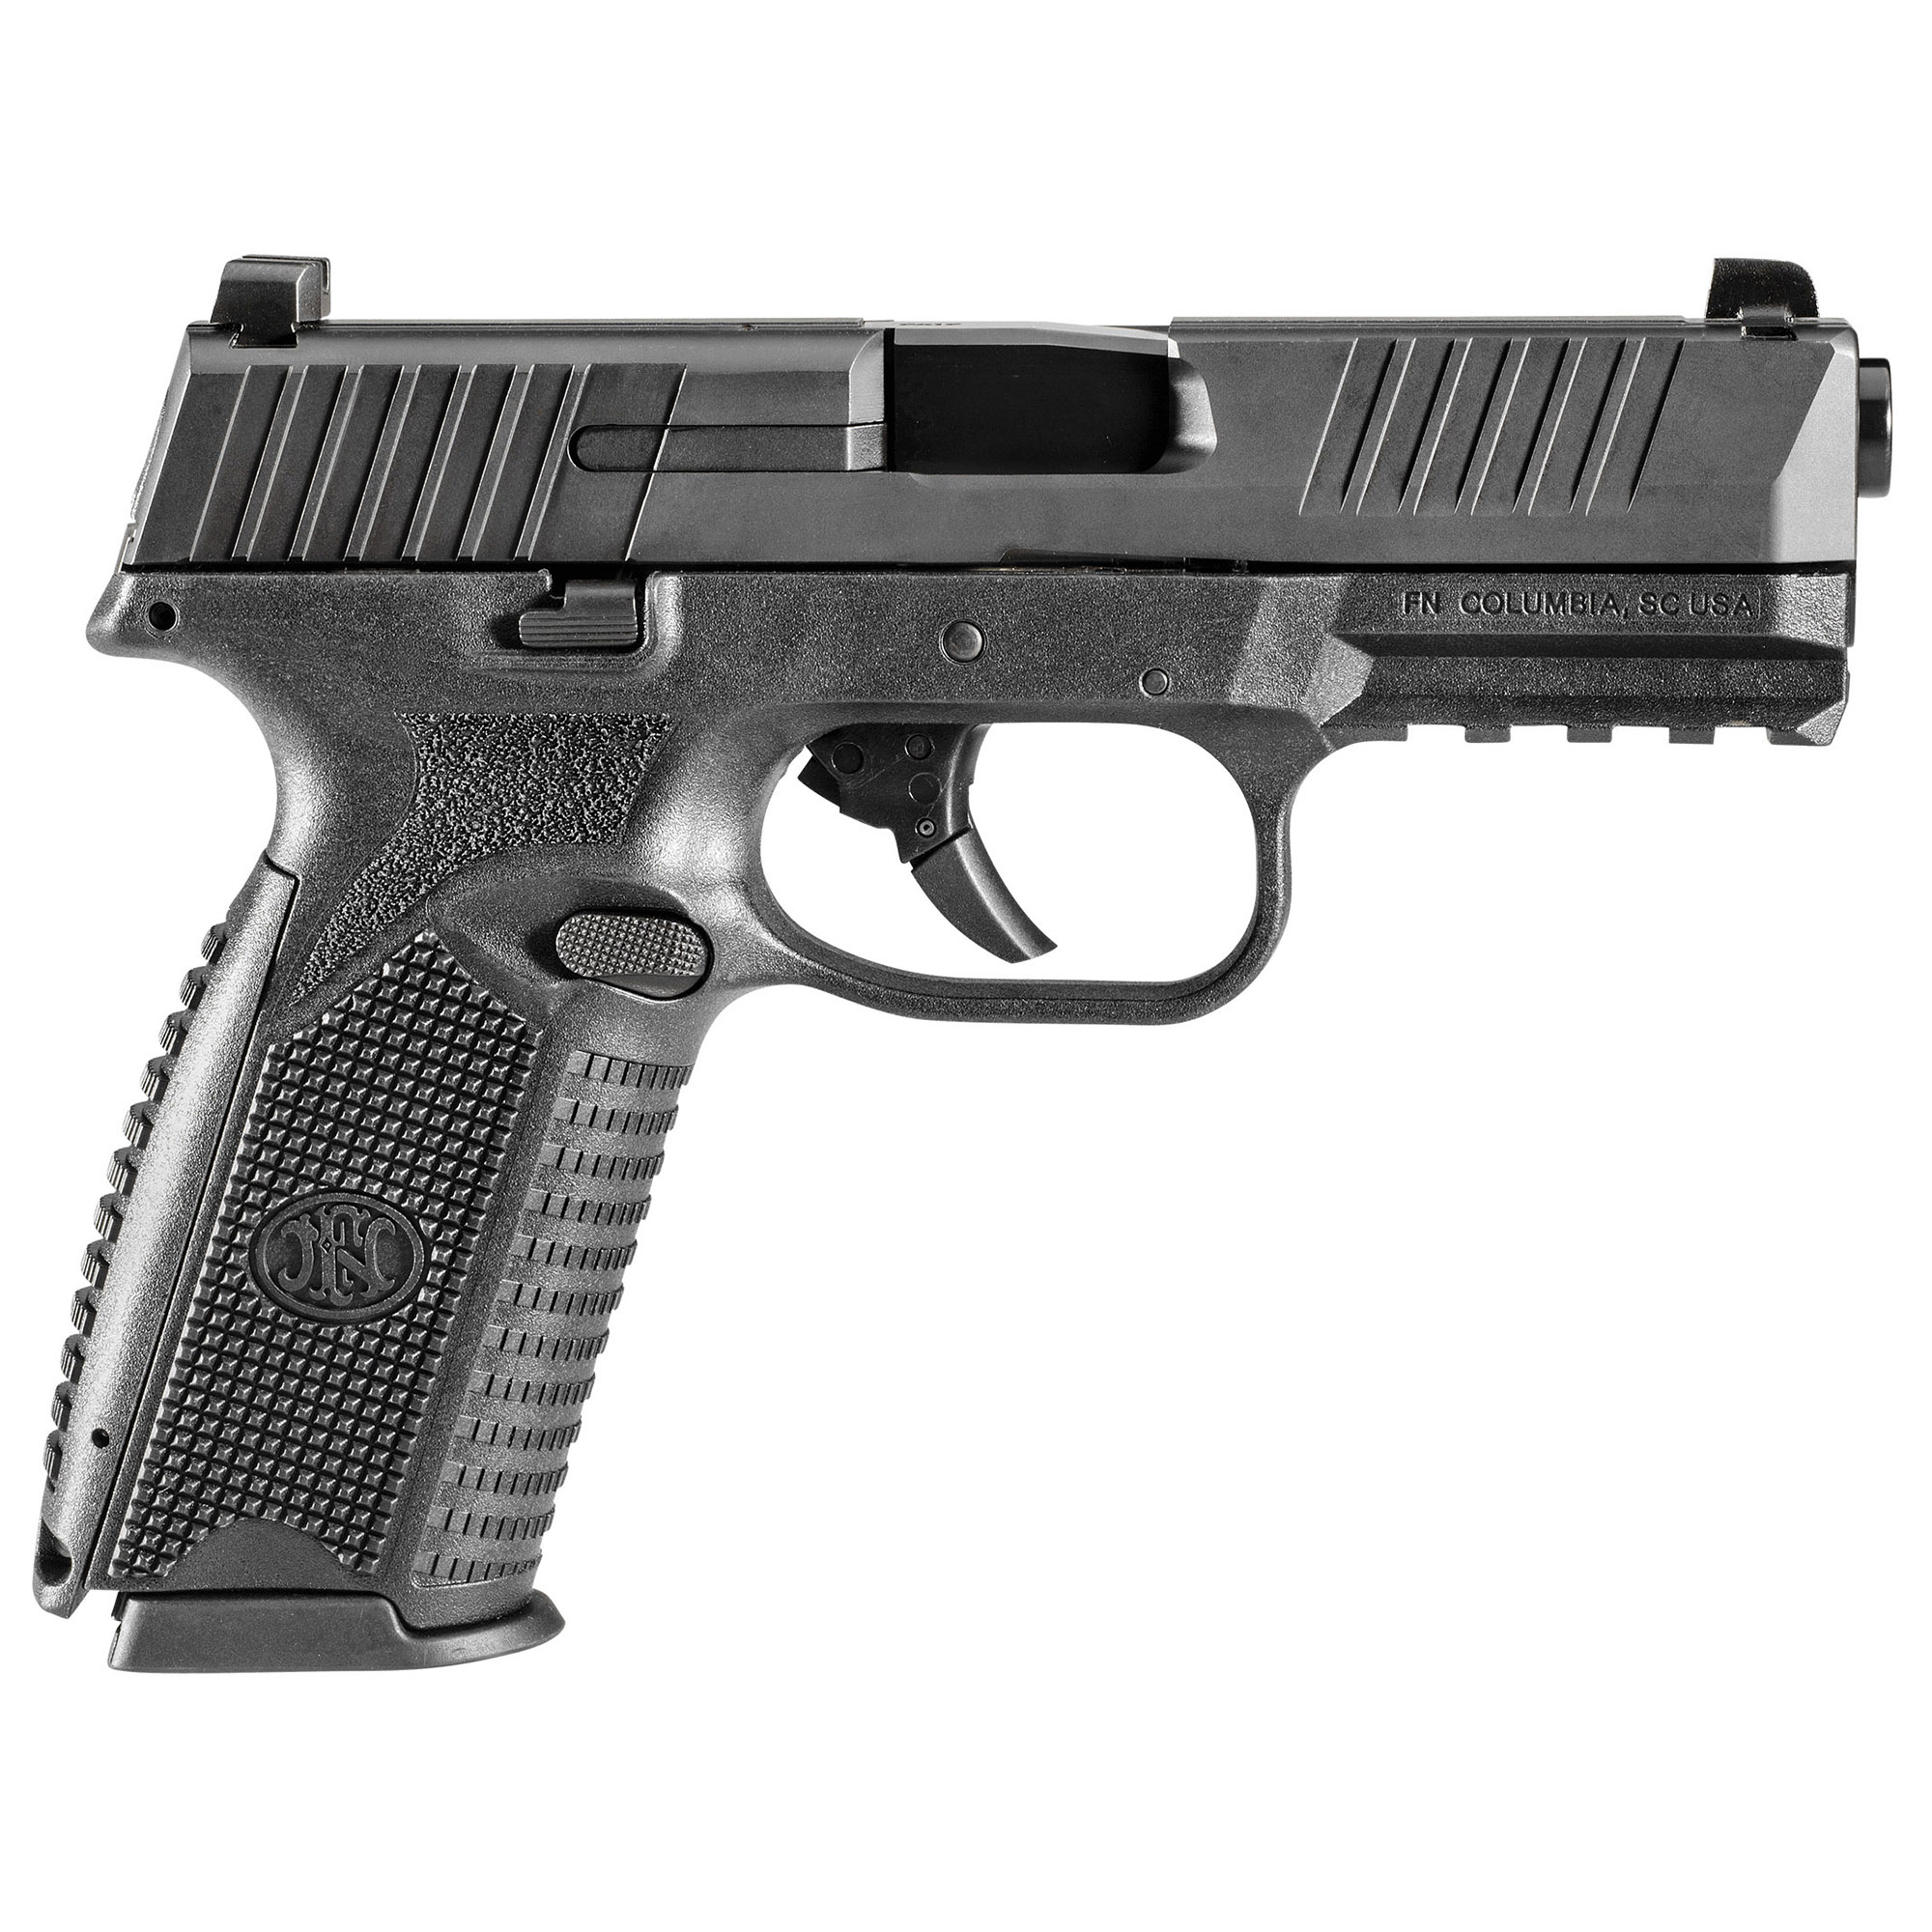 FN 509 Handgun, 9mm Luger, Black